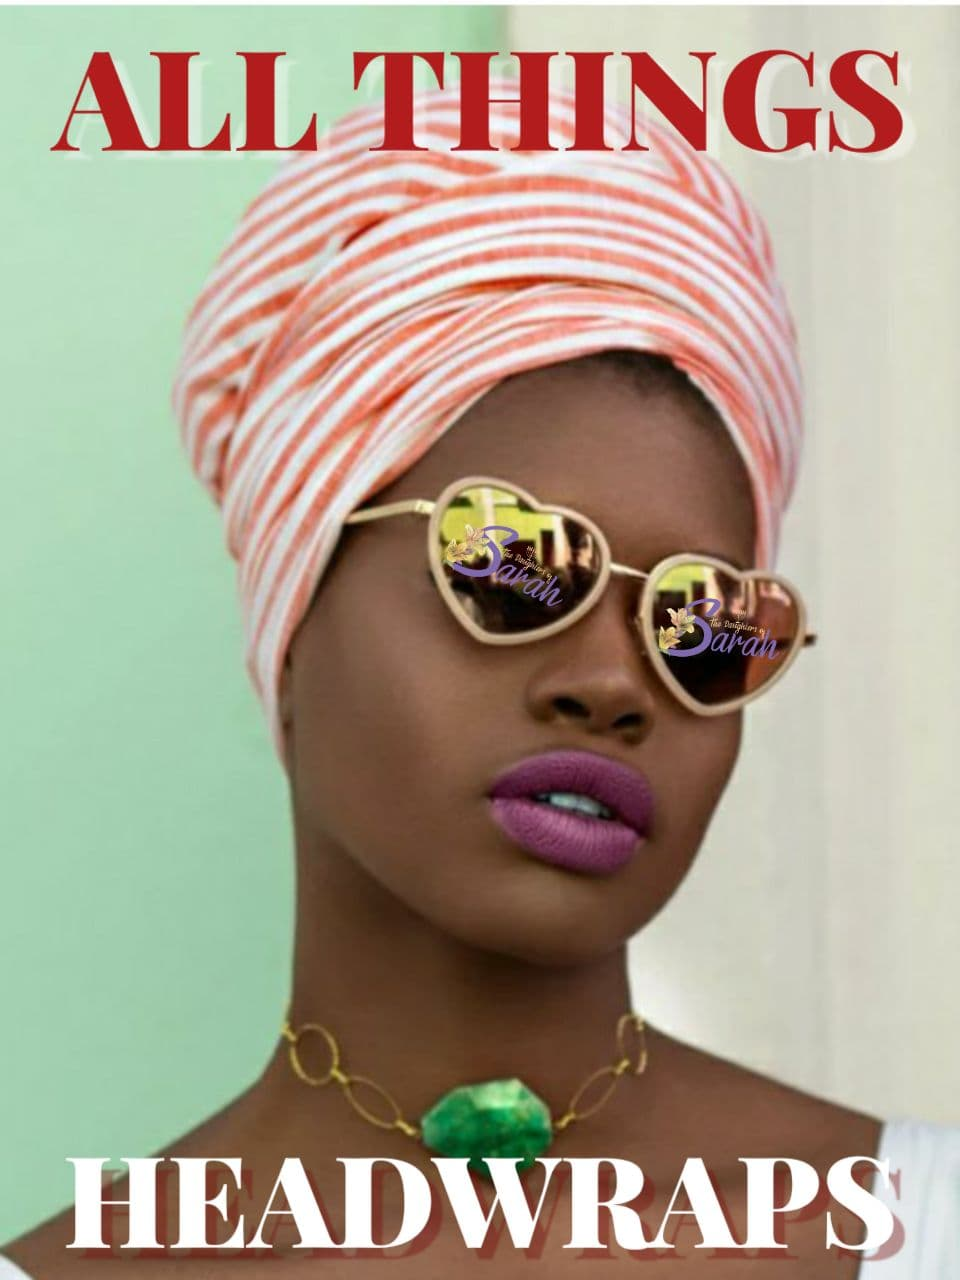 Headwraps-Fashion Articles-December 2020